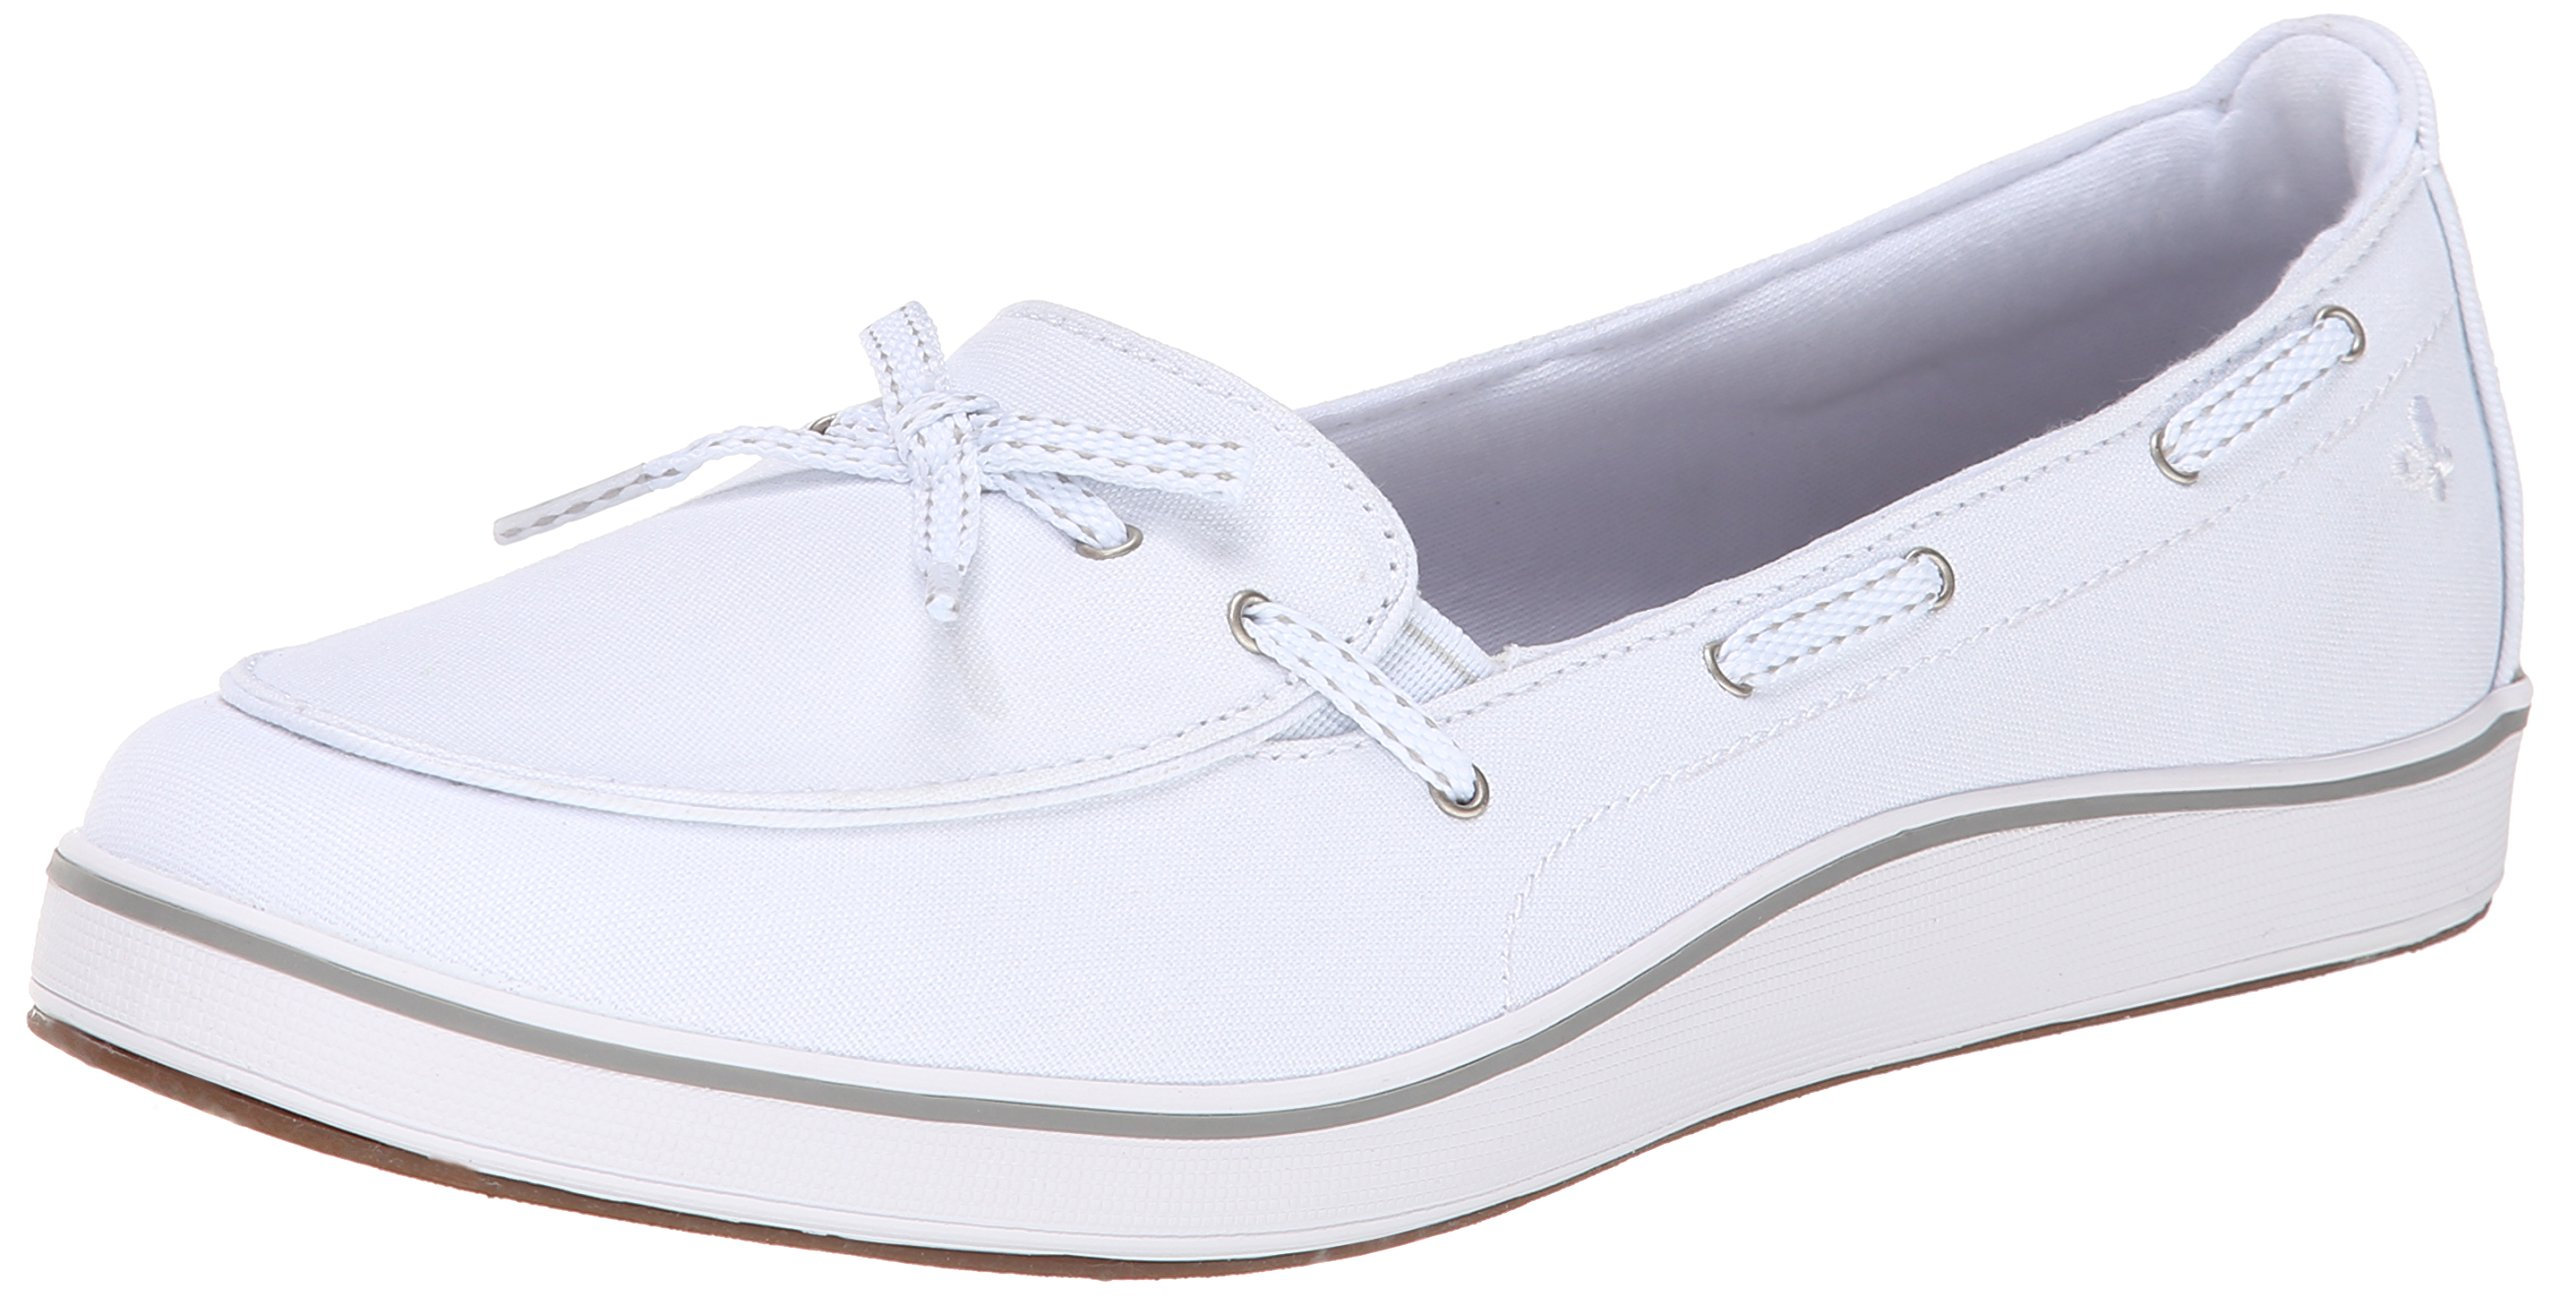 Grasshoppers Women's Windham Slip-On, White, 9.5 W US